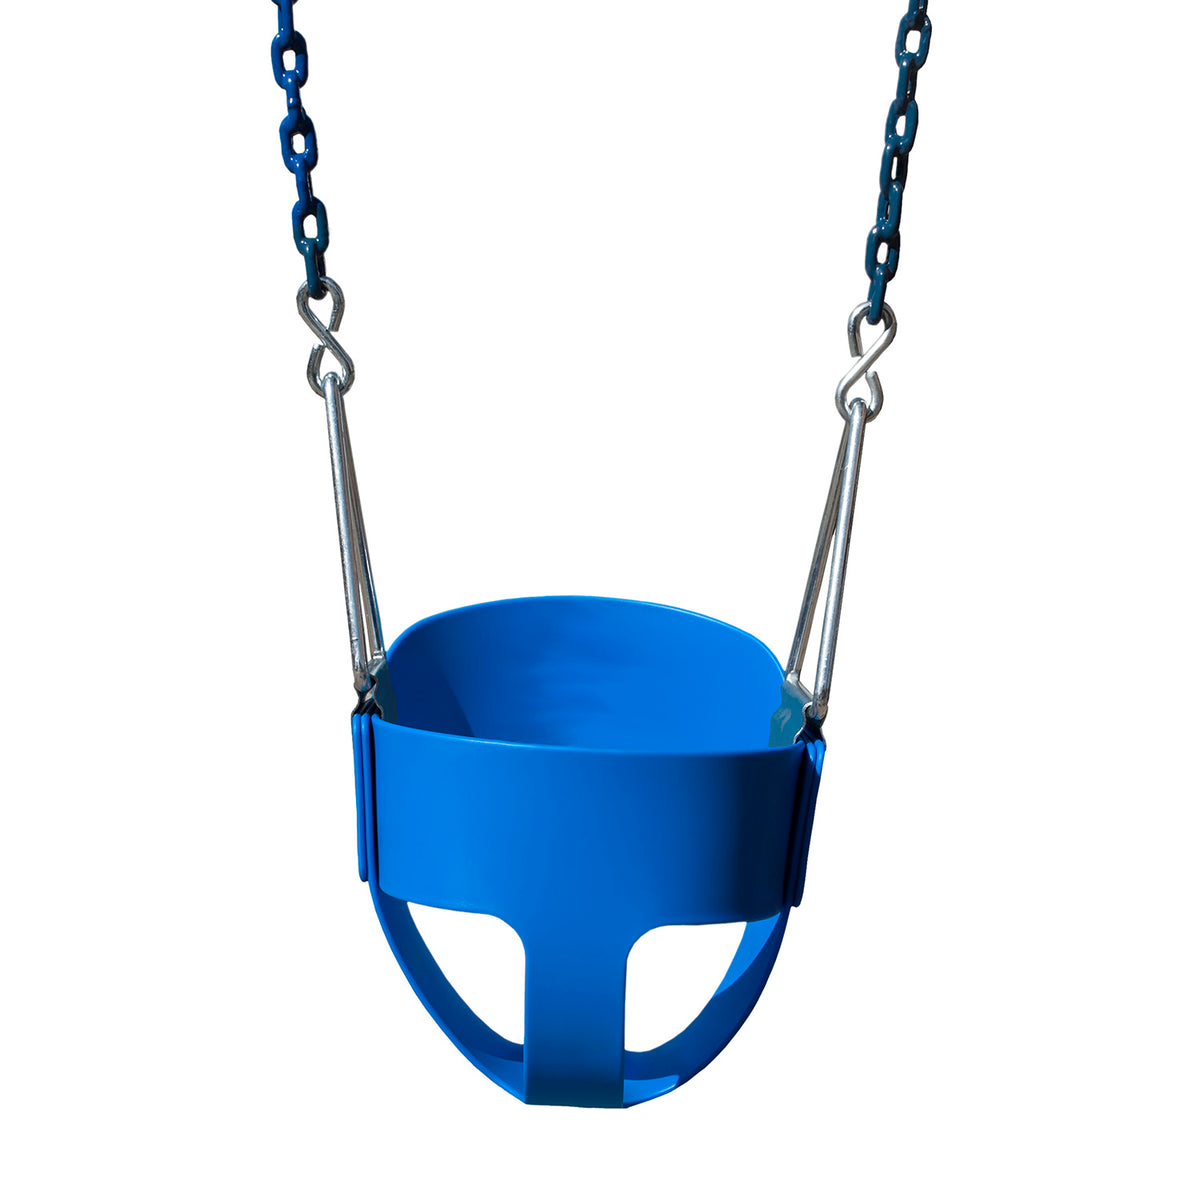 Gorilla-Playsets-Full-Bucket-Swing-Blue-White-Back